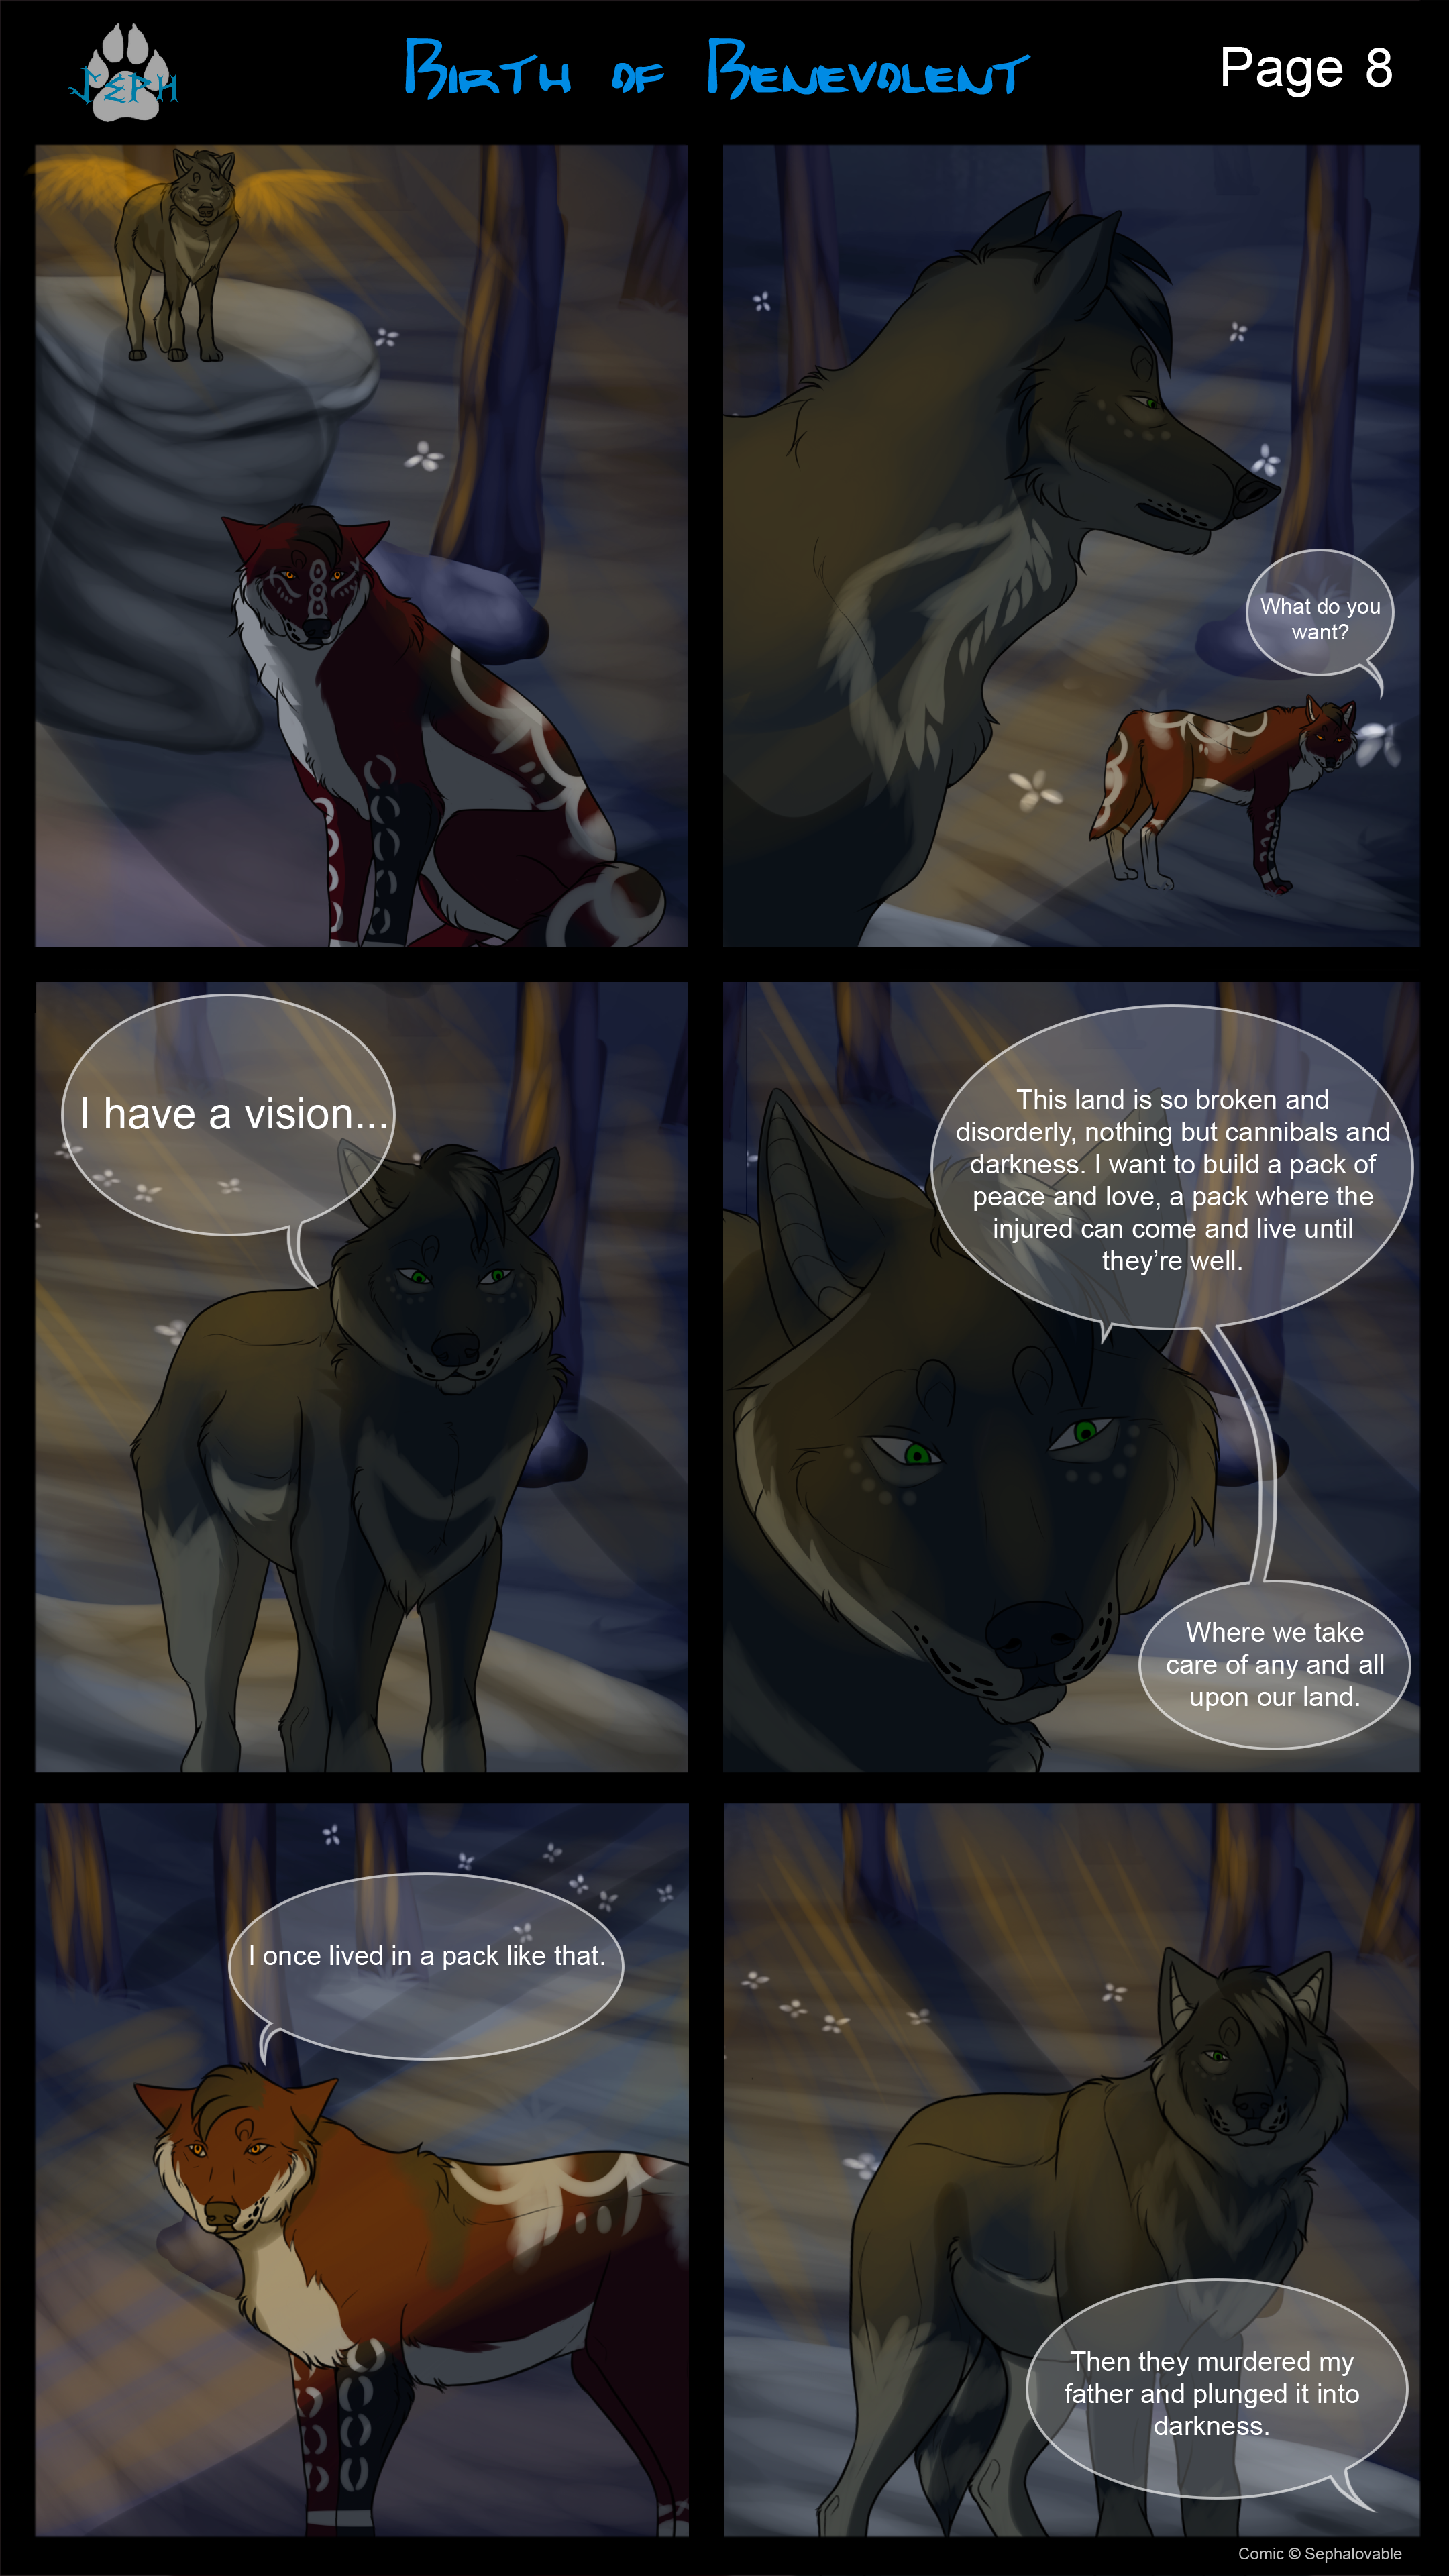 Birth of Benevolent Page 8 by MoscoMoon